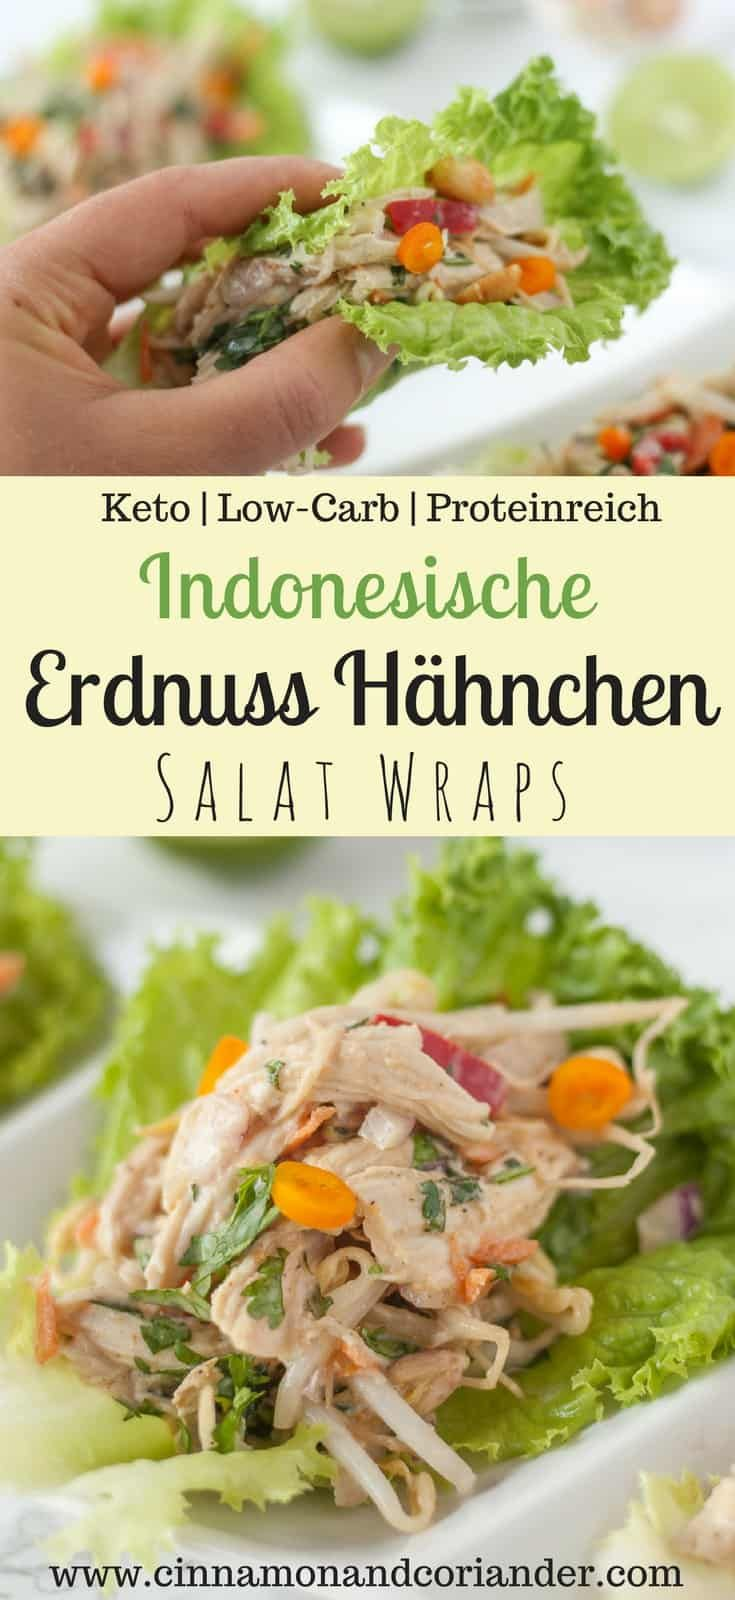 276 best Hähnchen Rezepte images on Pinterest | Chicken, Meat and ...